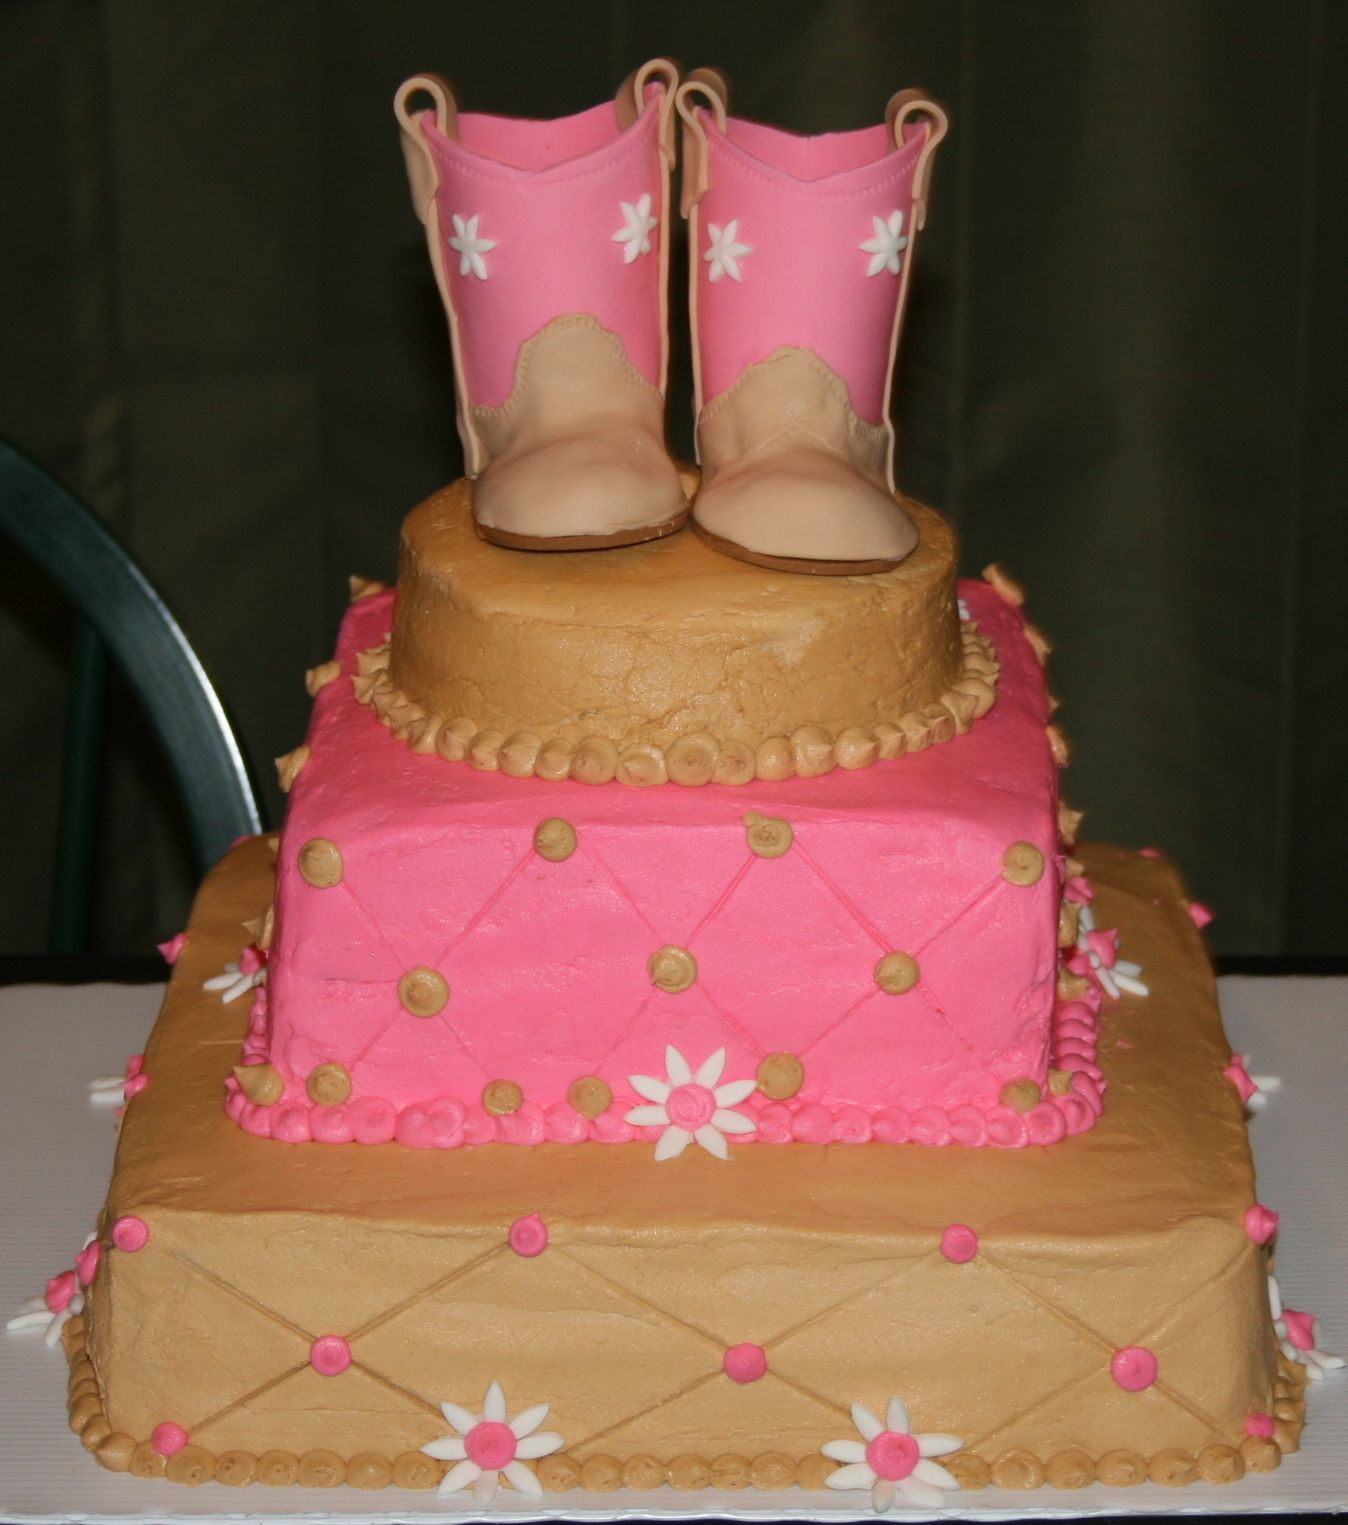 Baby Boots - Baby shower cakes for neighbor\u0027s friend, with baby ...